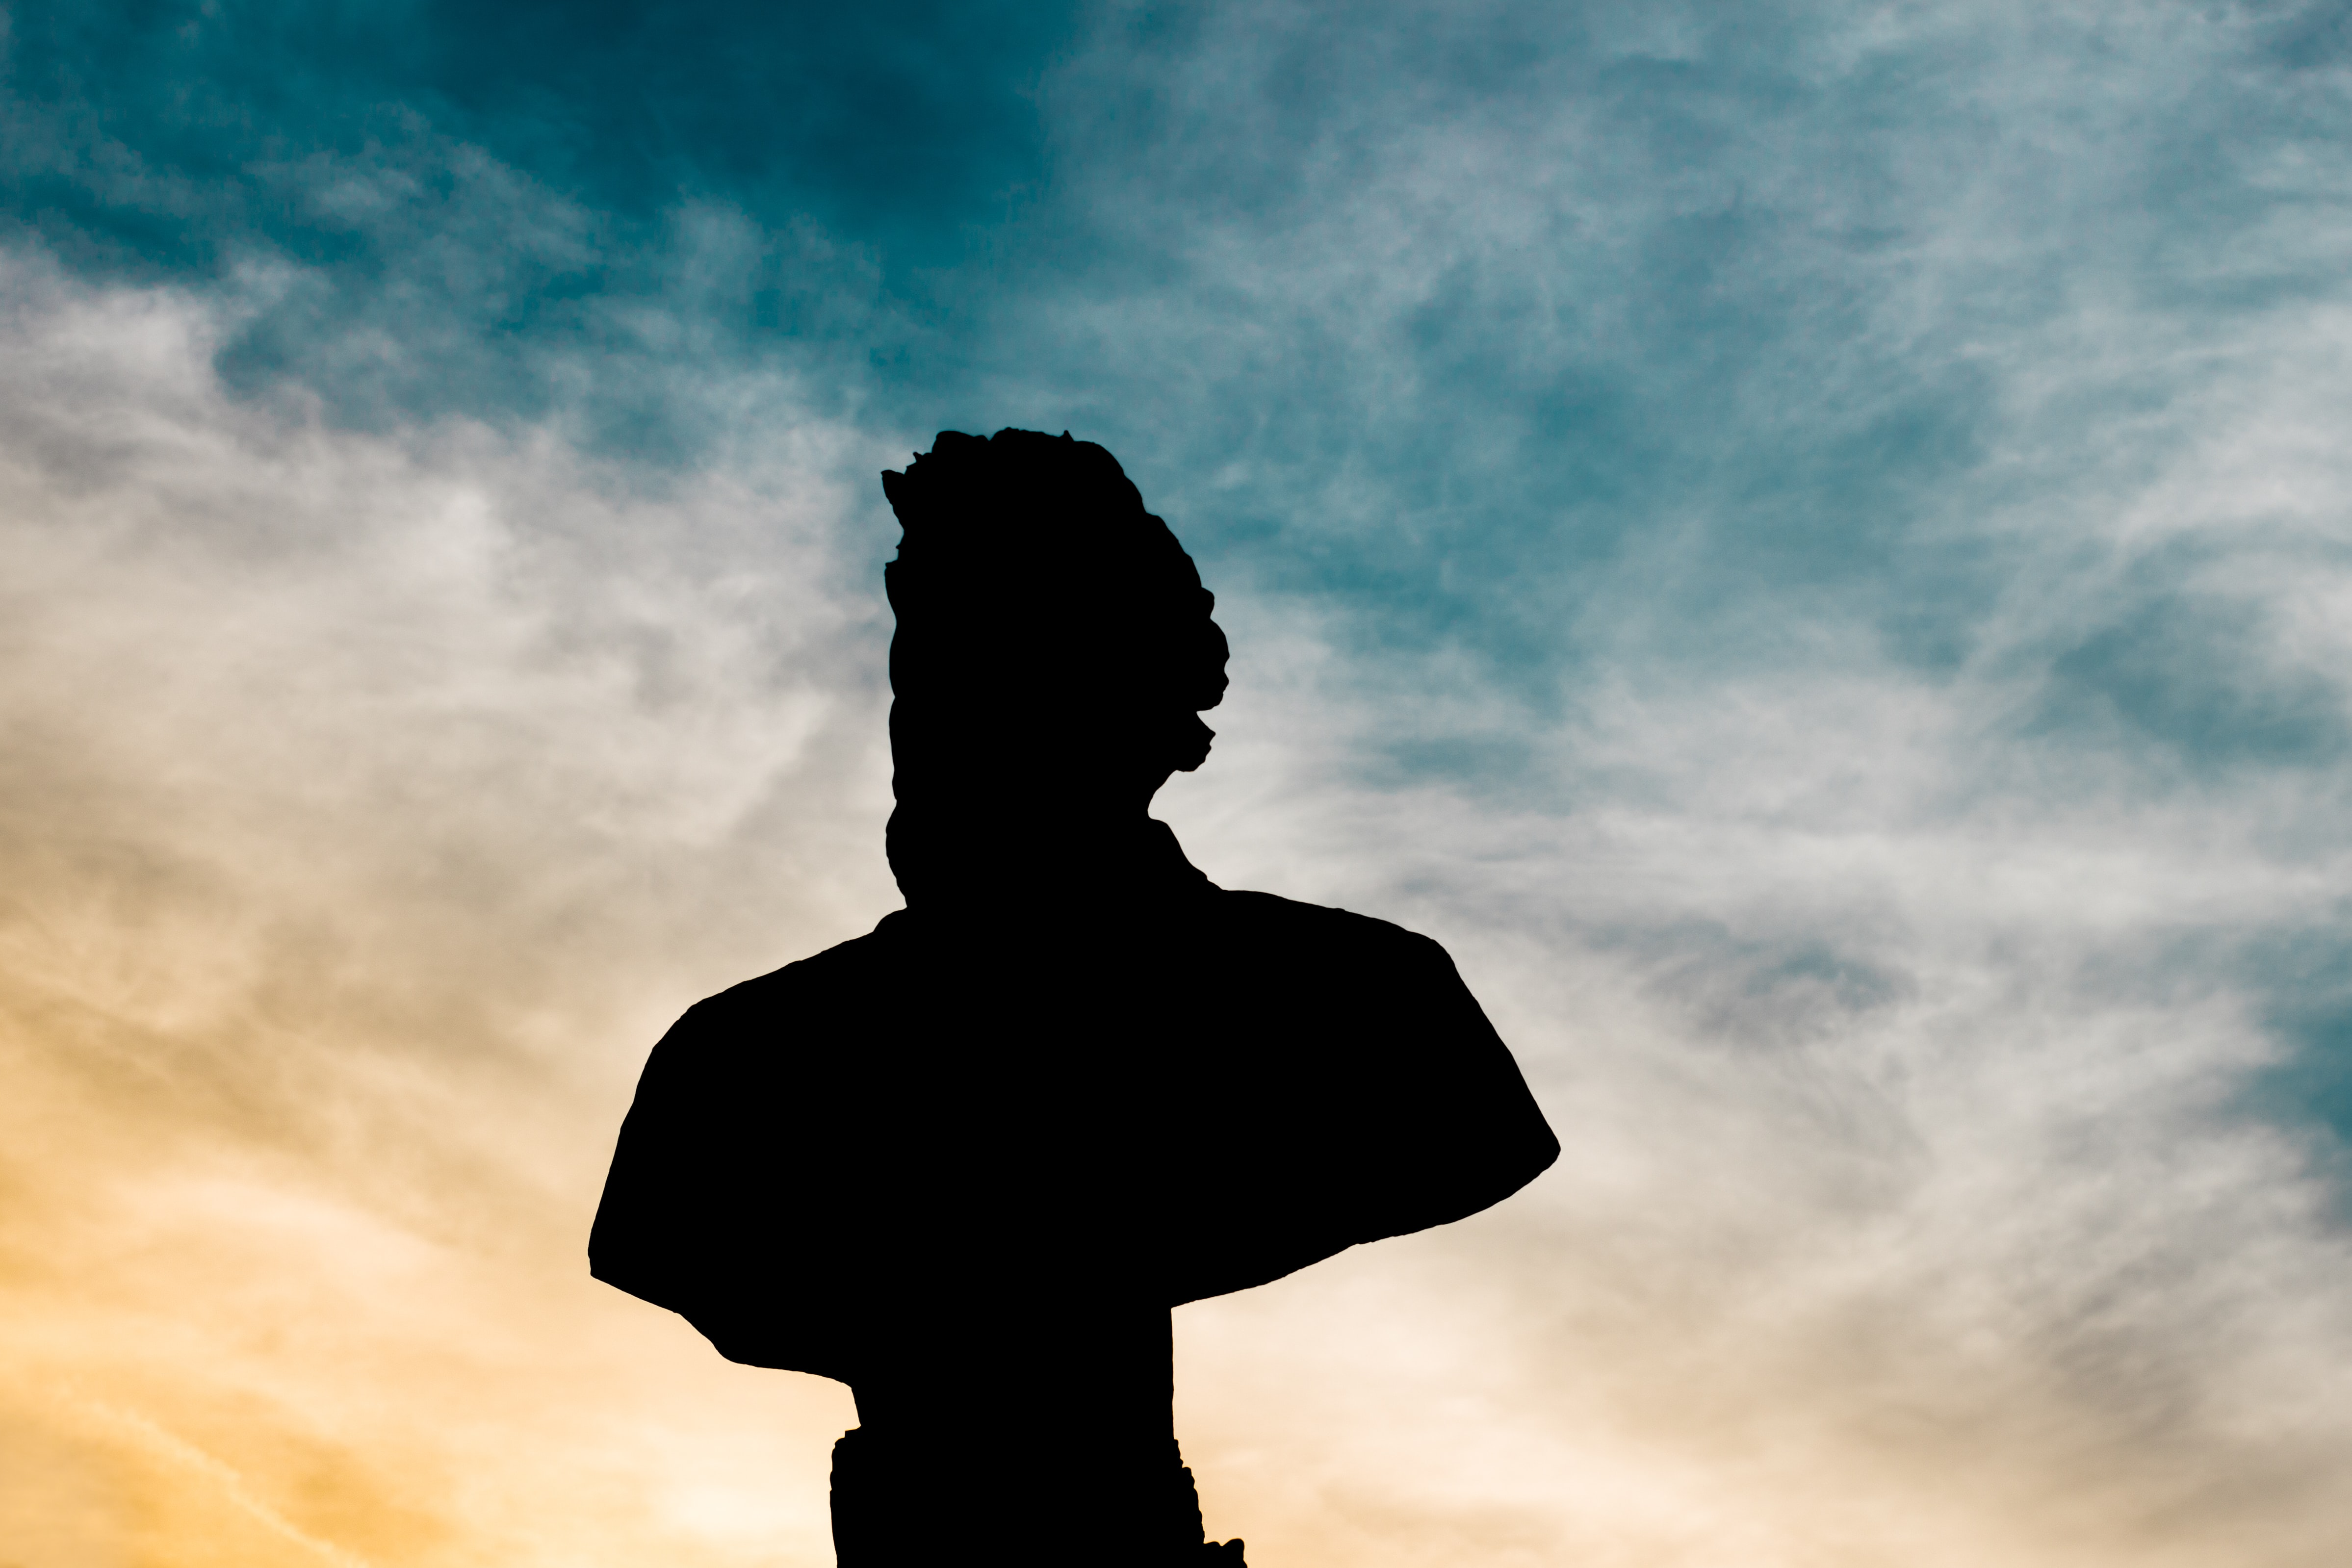 silhouette of statue bust of man under cloud sky during daytime